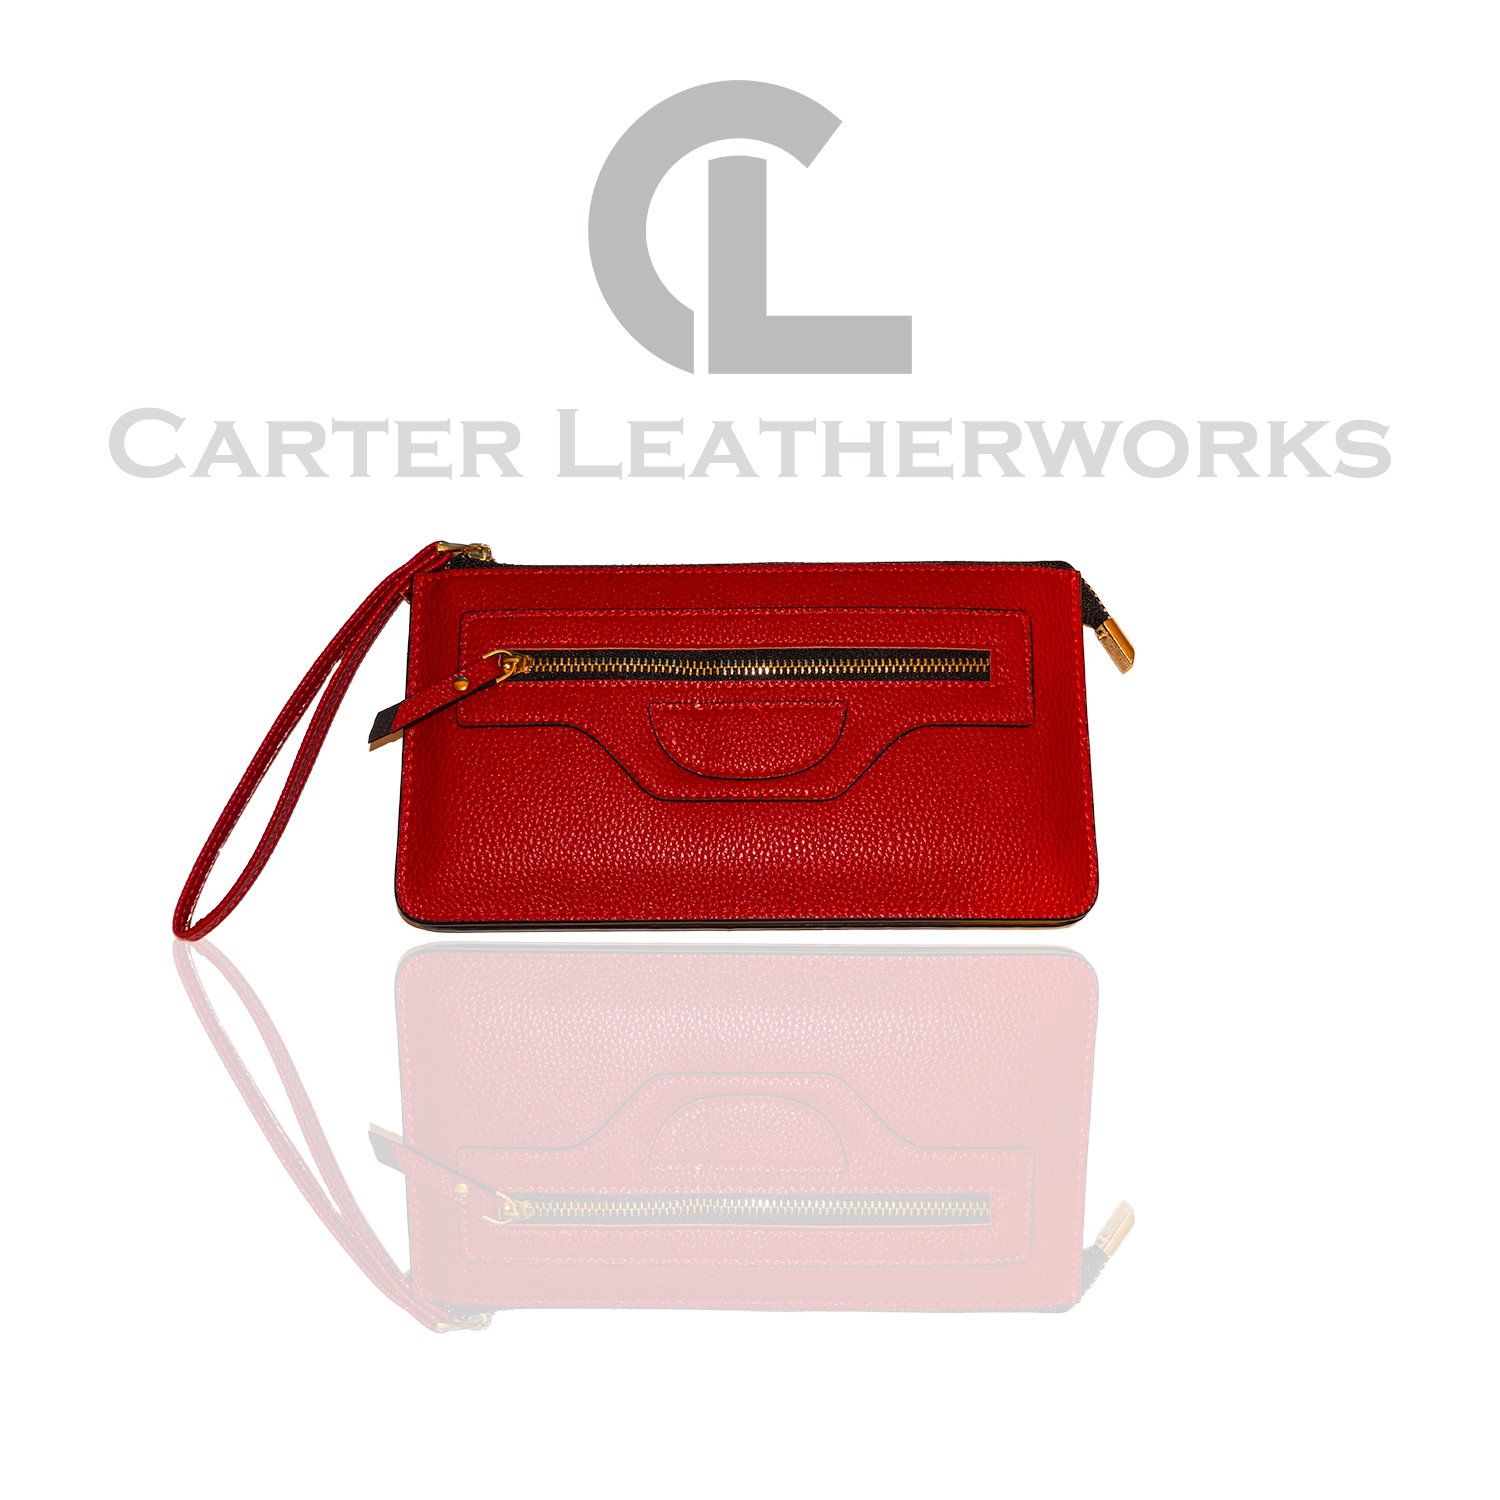 Carter Leatherworks Rodeo Womens PU Vegan Leather Wristlet Wallet Clutch Purse Fits Any Smartphone (Red)